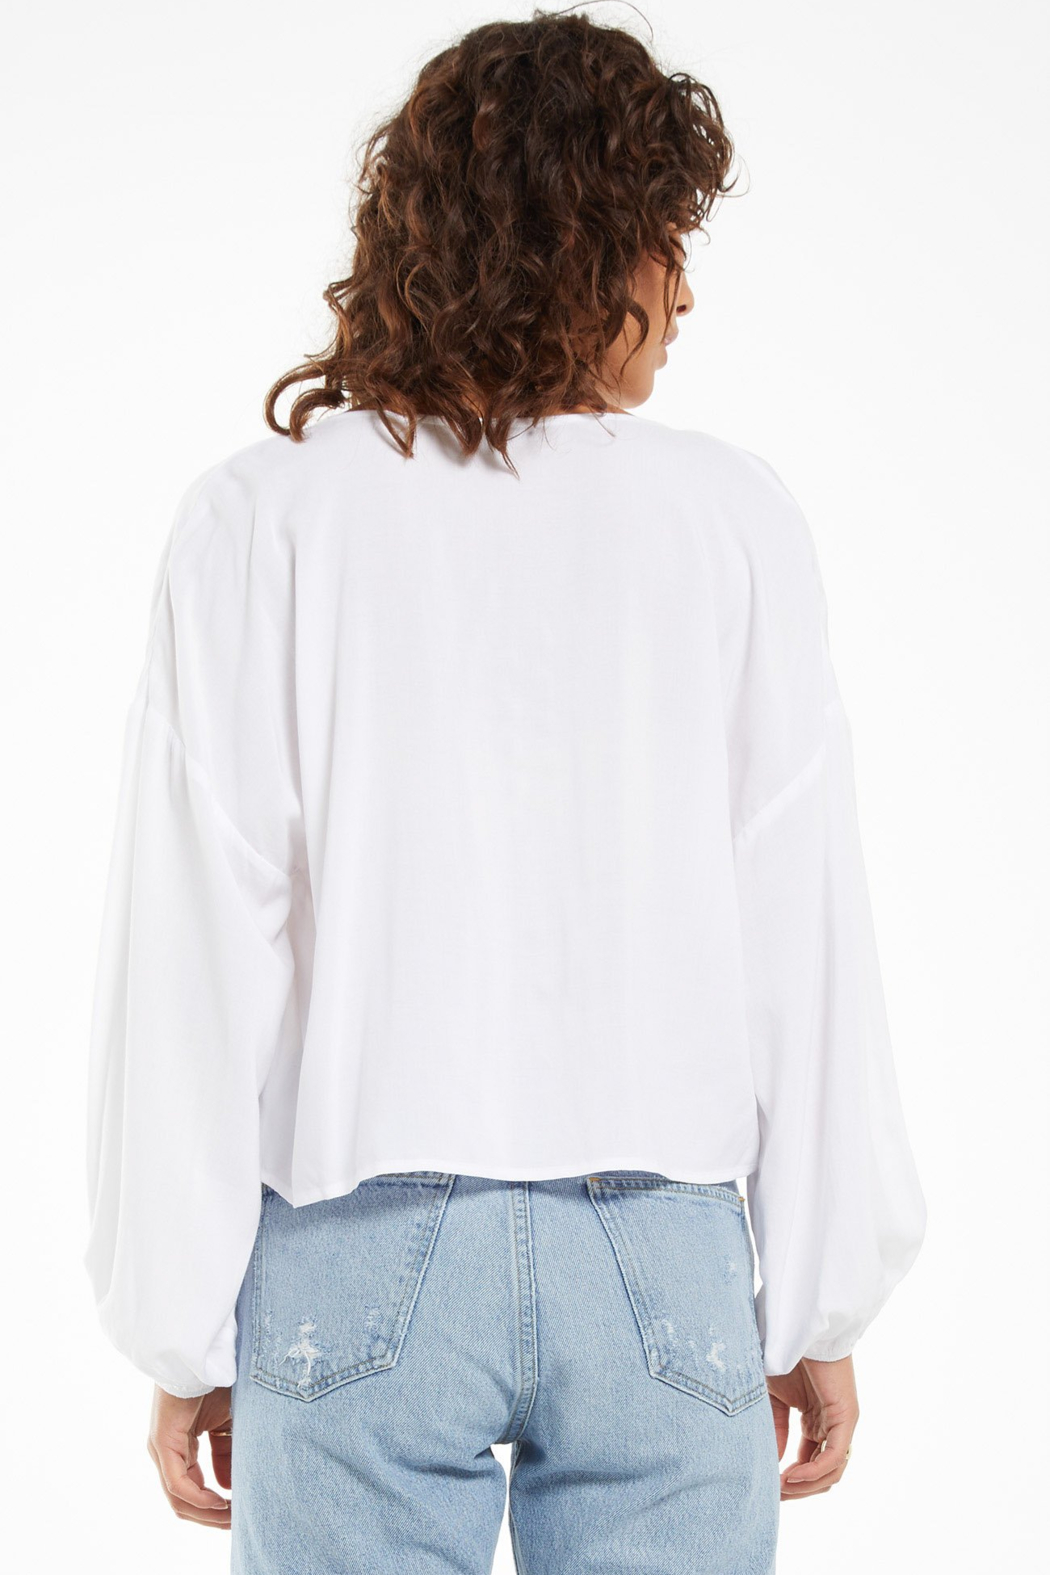 z supply Z Supply Coral Isle Top - White - Side Cropped Image